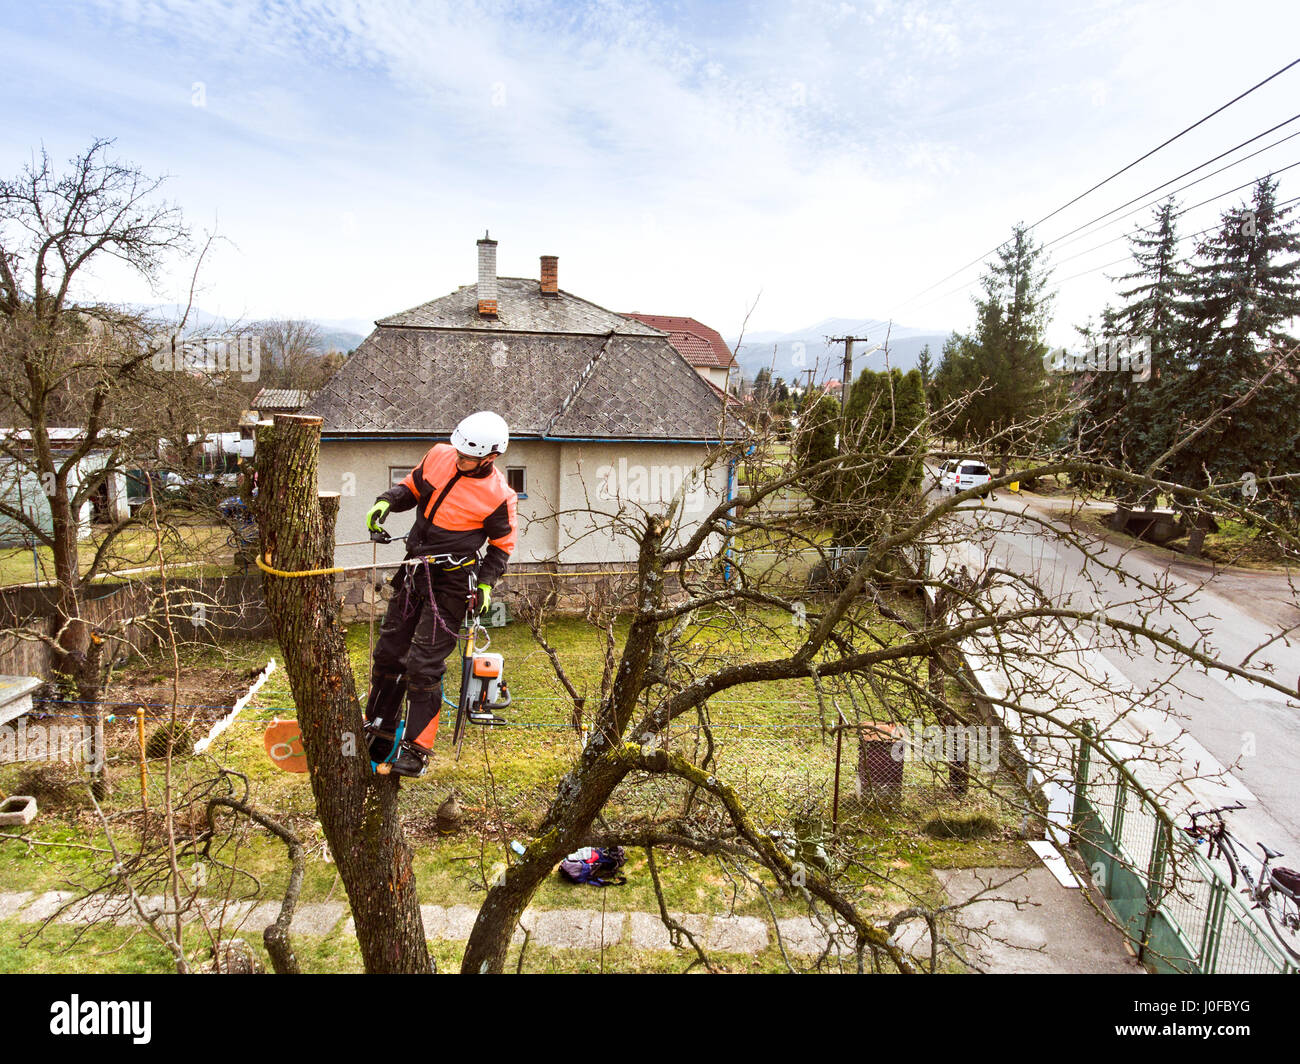 Lumberjack with chainsaw and harness pruning a tree. Arborist cuting tree branches. - Stock Image